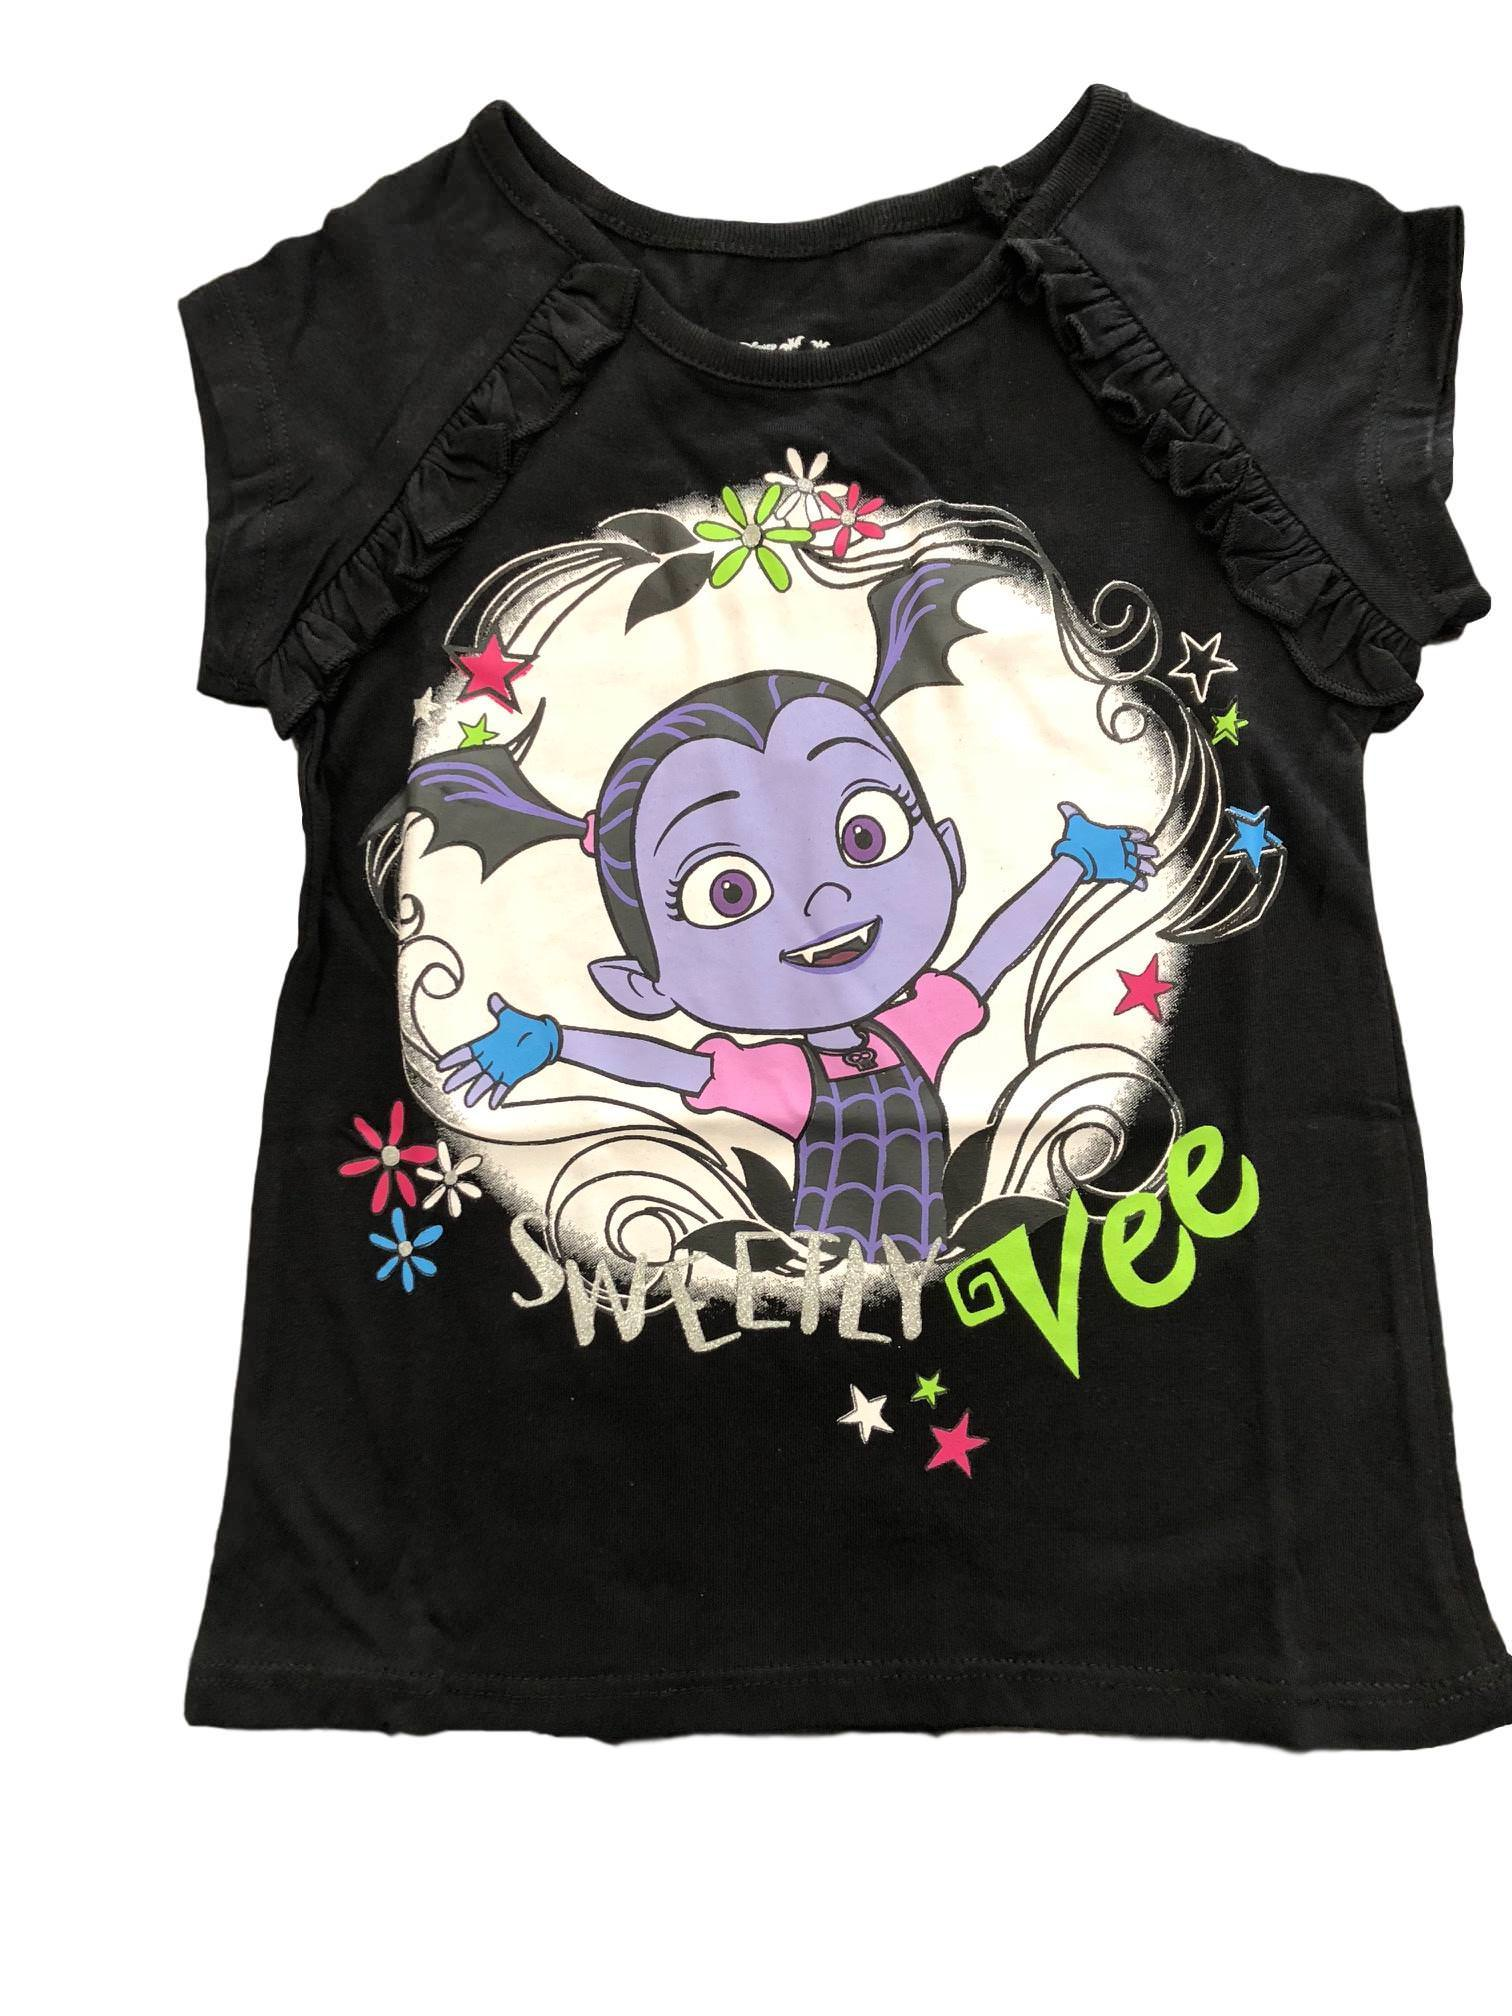 Disney Vampirina Girls' Short Sleeve Shirt, 2T-6X, Pink, Purple, Black